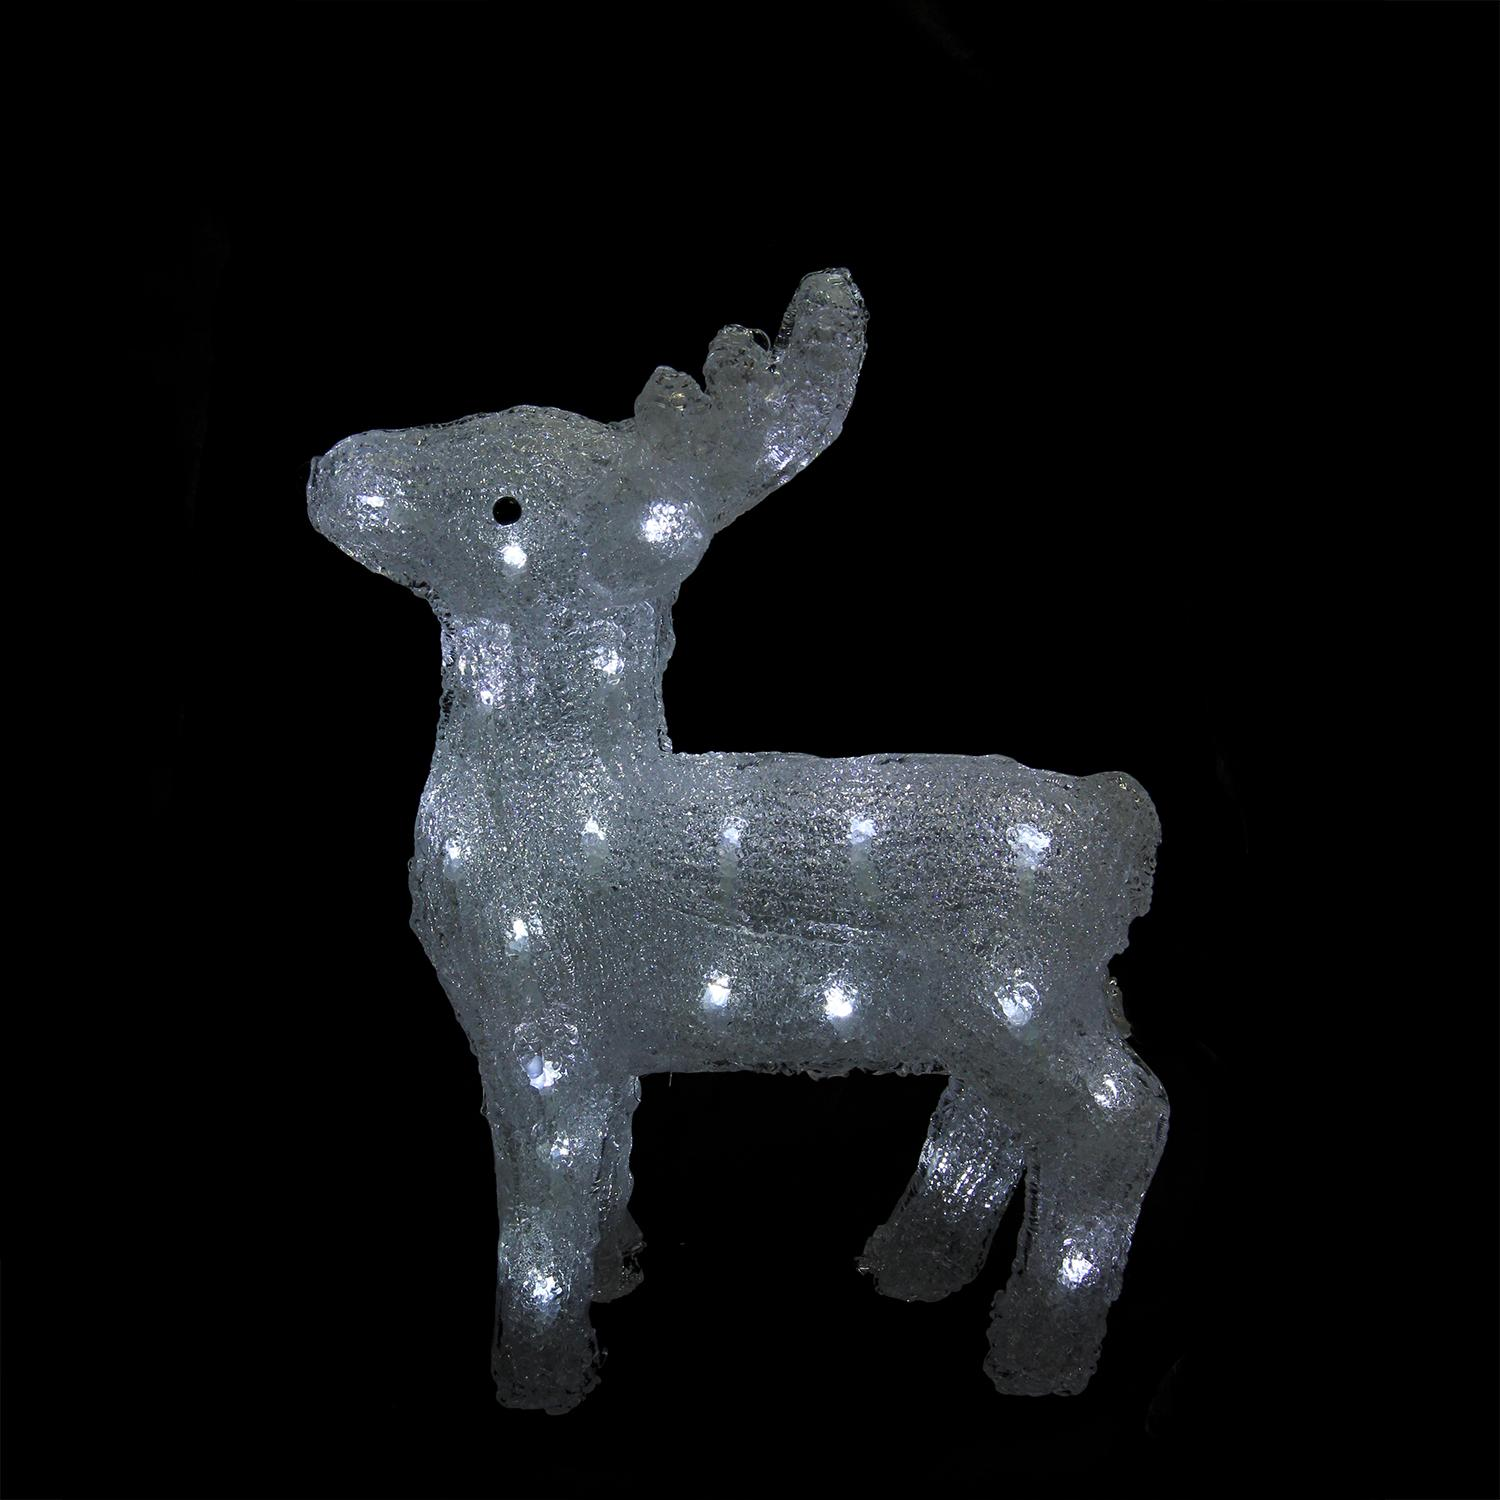 "15"" Lighted Commercial Grade Acrylic Baby Reindeer Christmas Display Decoration - image 1 of 2"